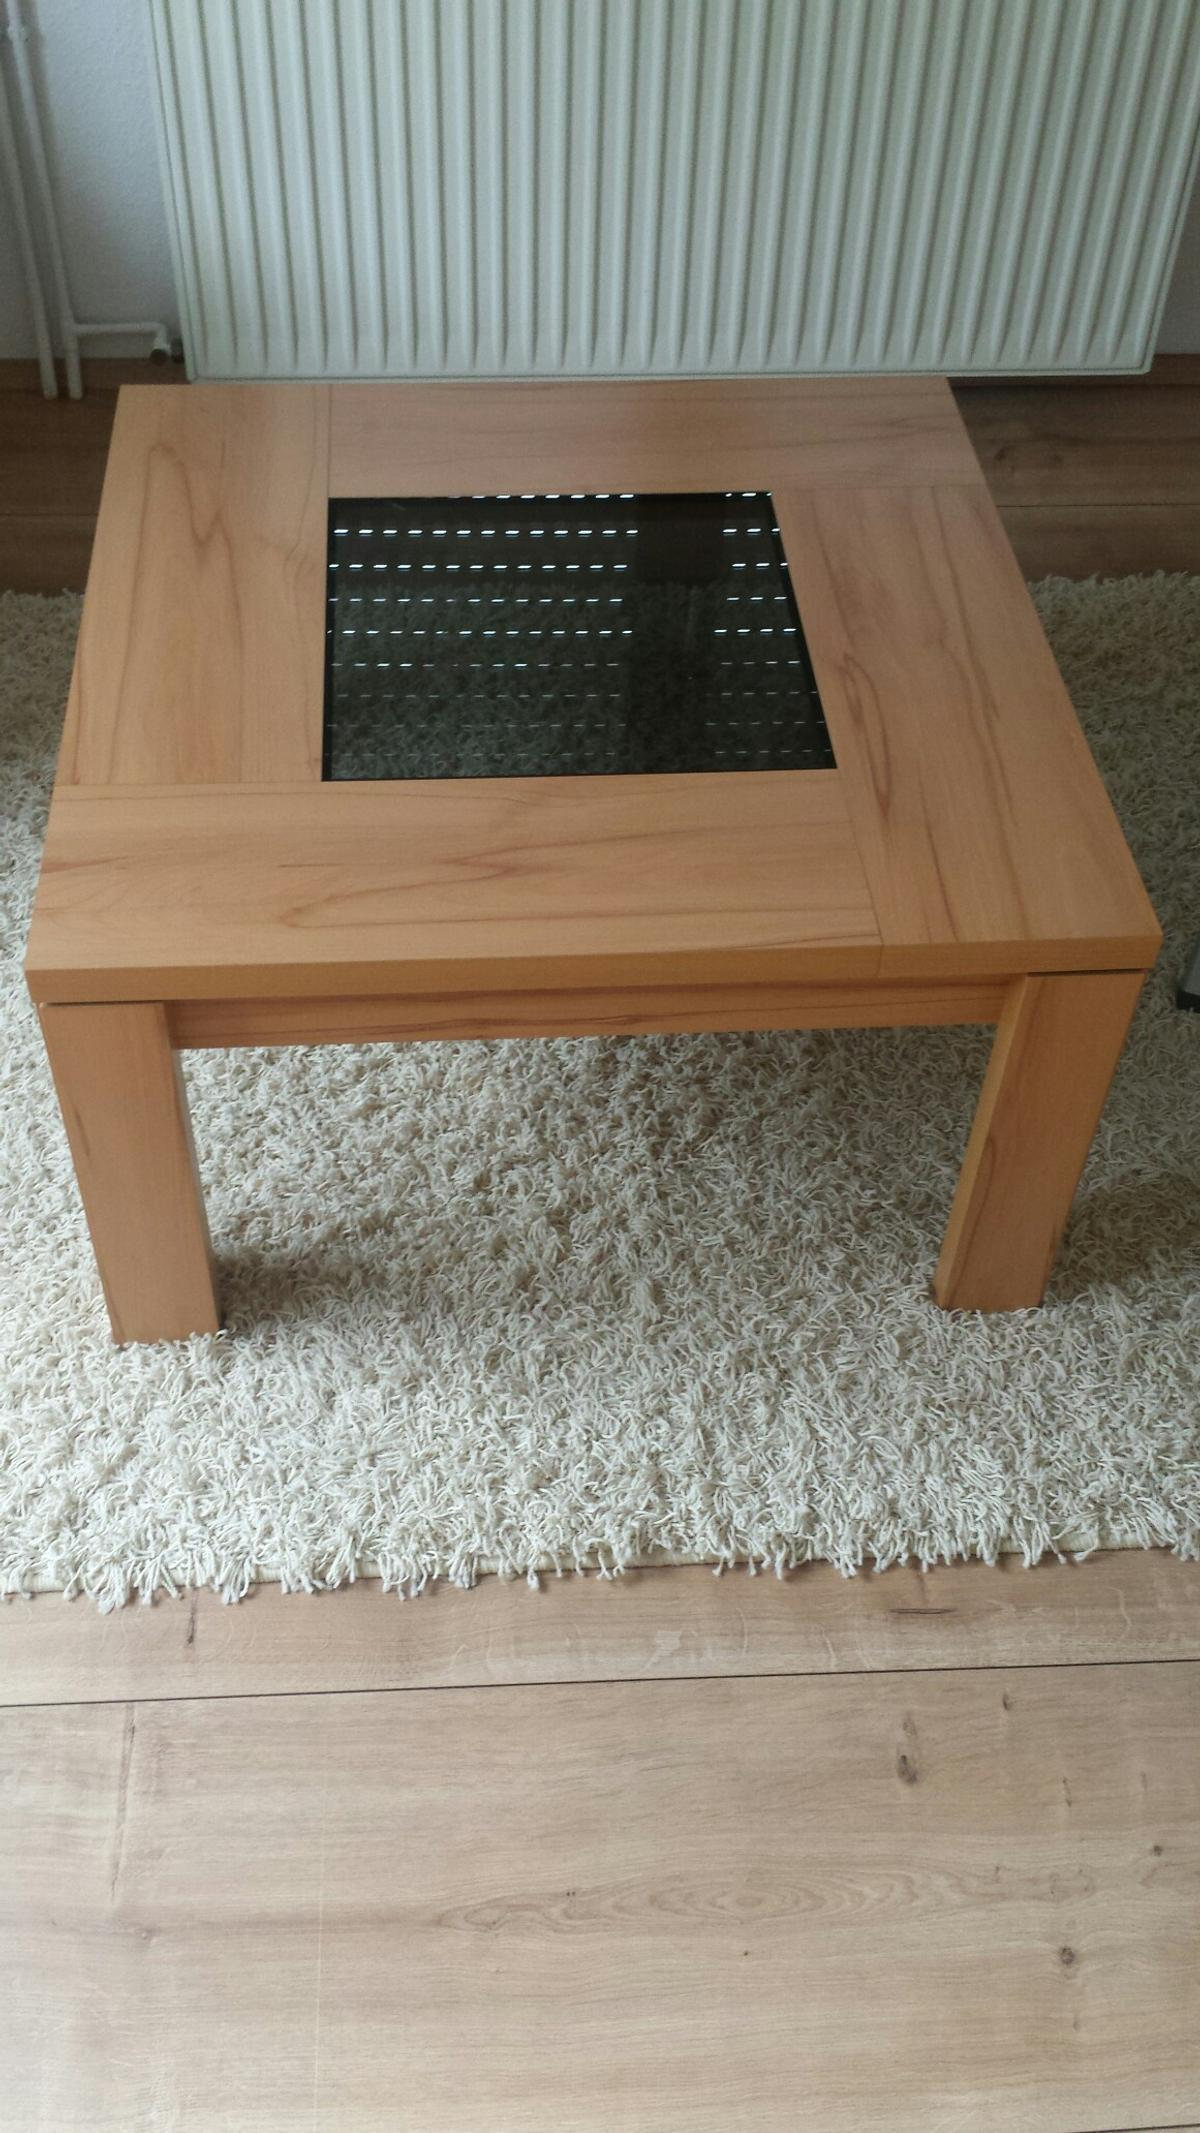 Couchtisch Mit Glas 80x80 In 53945 Blankenheim For 150 00 For Sale Shpock